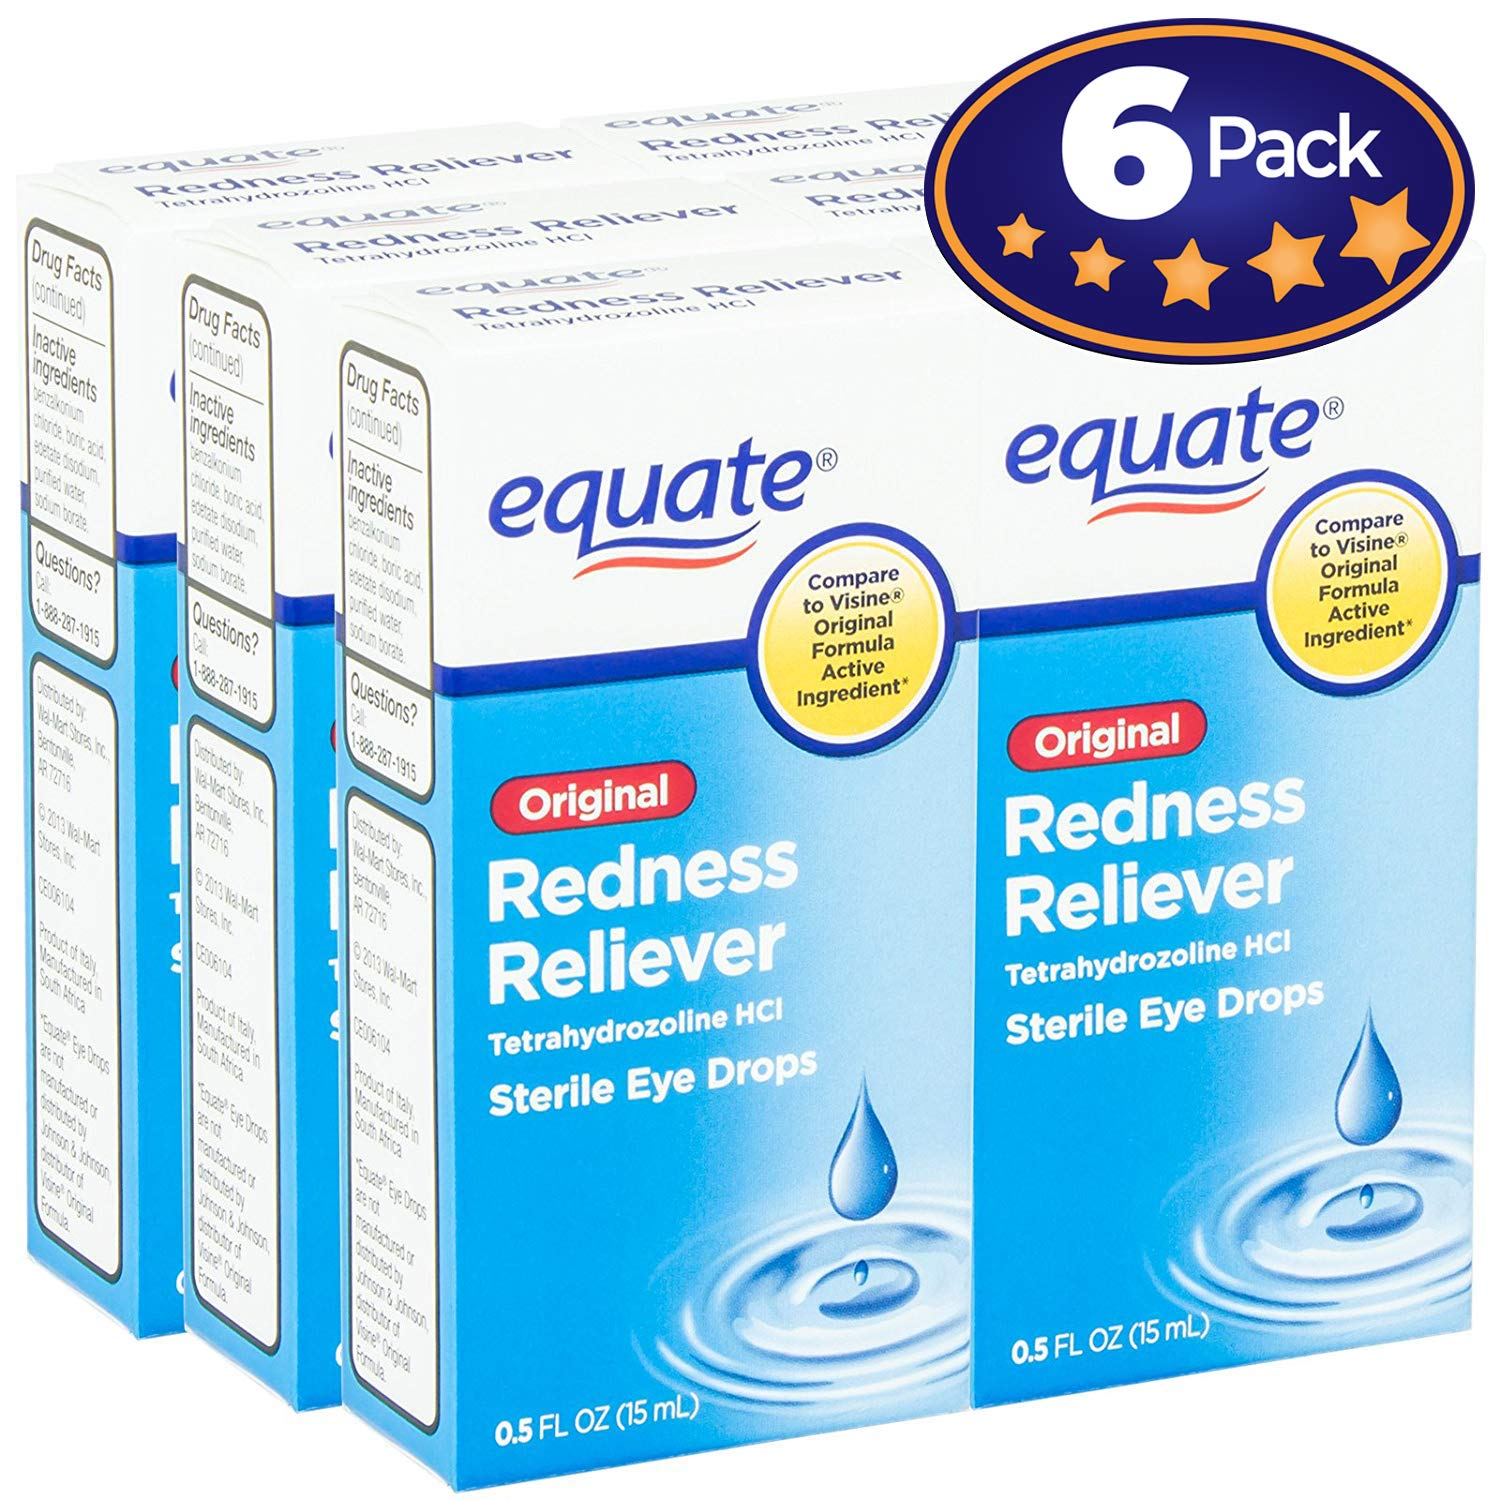 Equate Redness Reliever Sterile Eye Drops 0.5oz Dropper Bottle 6 Pack. Lubricant Gives Long Lasting Relief for Burning, Itching, & Dryness Fast! Cures Red Eyes with Active Ingredient Tetrahydrozoline.